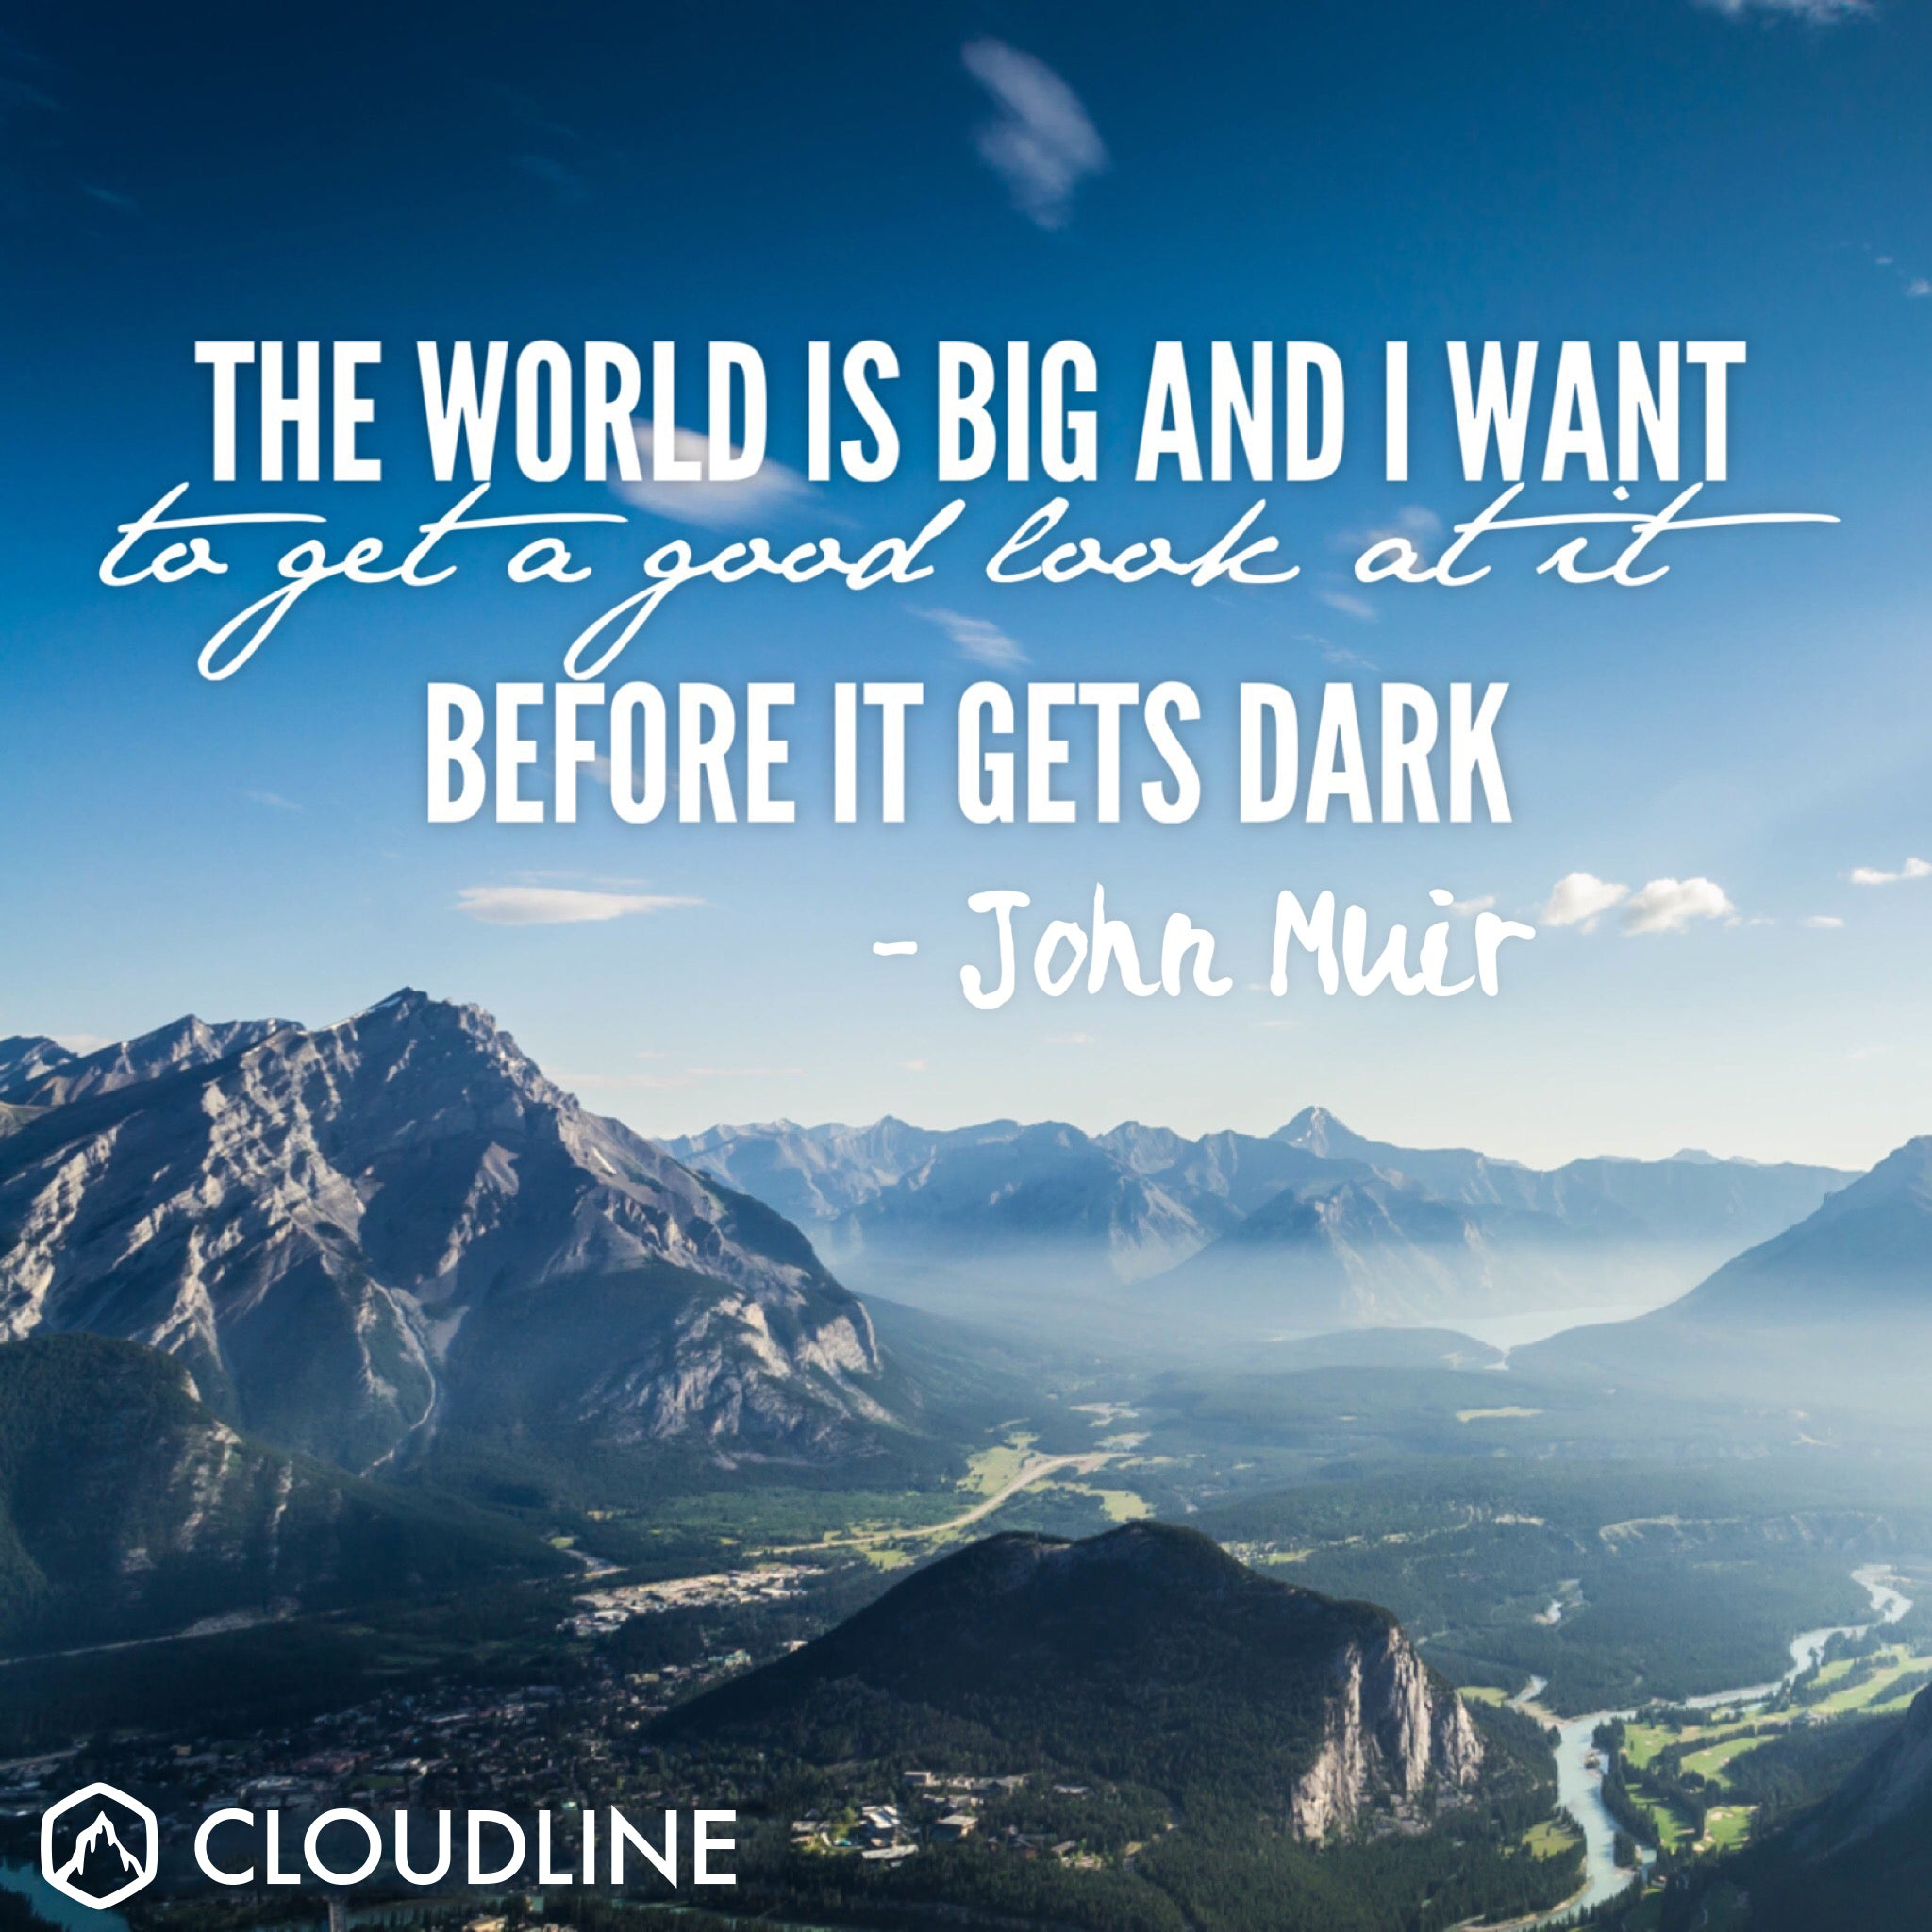 """The world is big and I want to get a good look at it before it gets dark."" - John Muir"